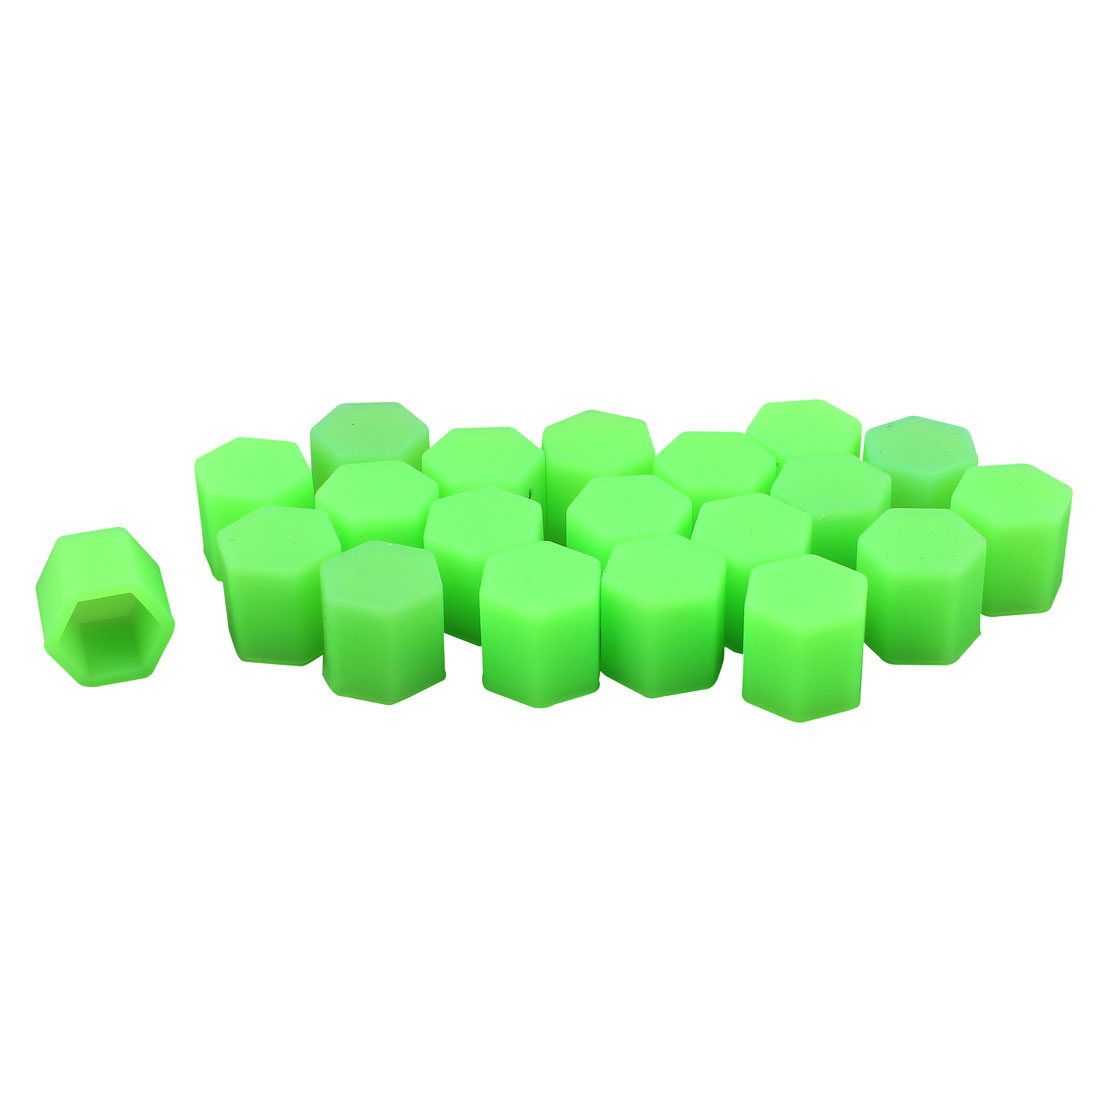 20Pcs Green Silicone Car Wheel Hex Nuts Bolts Hub Screw Dust Covers Caps Protector 17mm